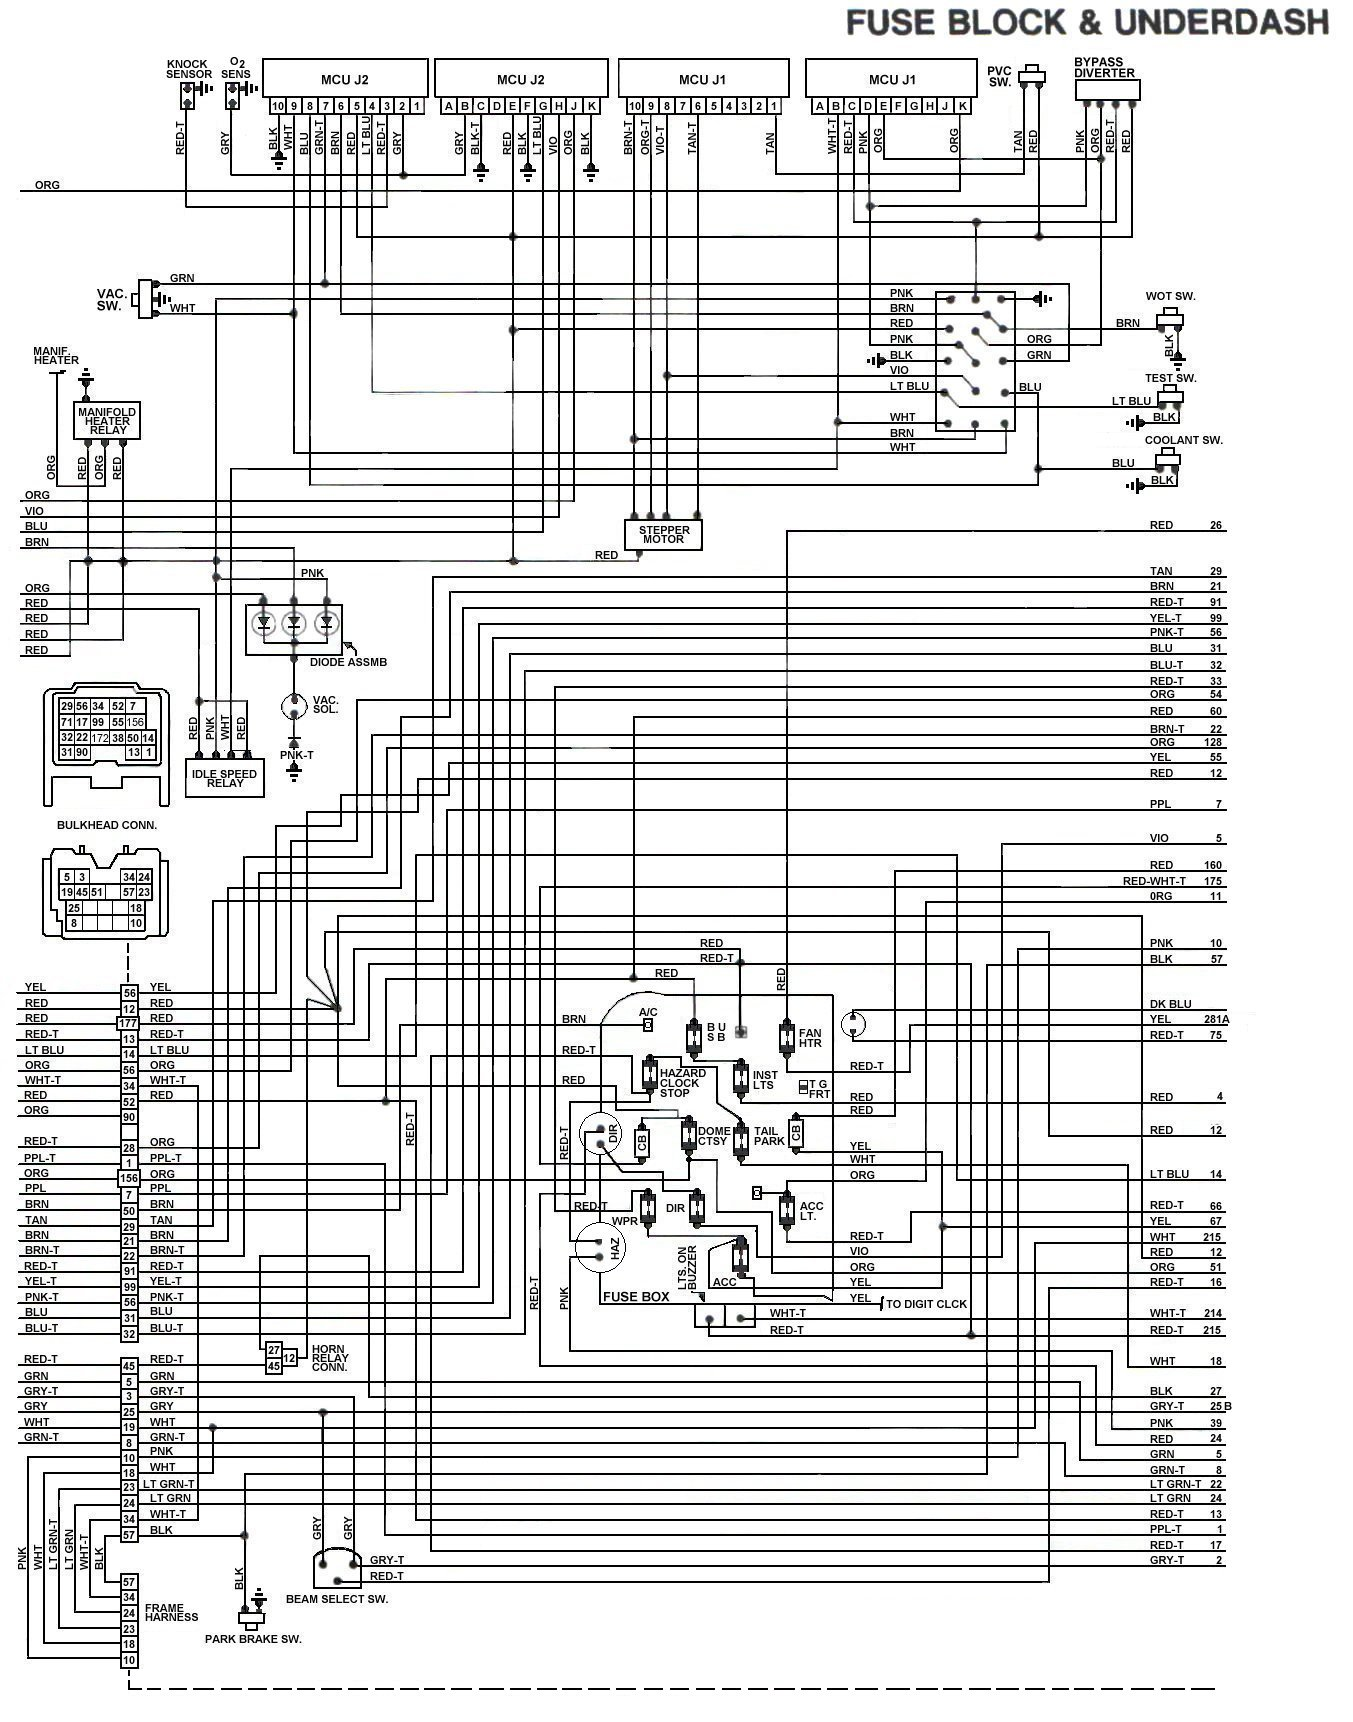 83_FSJ_WiringDiagram_FuseBlock Underdash tom 'oljeep' collins fsj wiring page small block chevy starter wiring diagram at gsmx.co